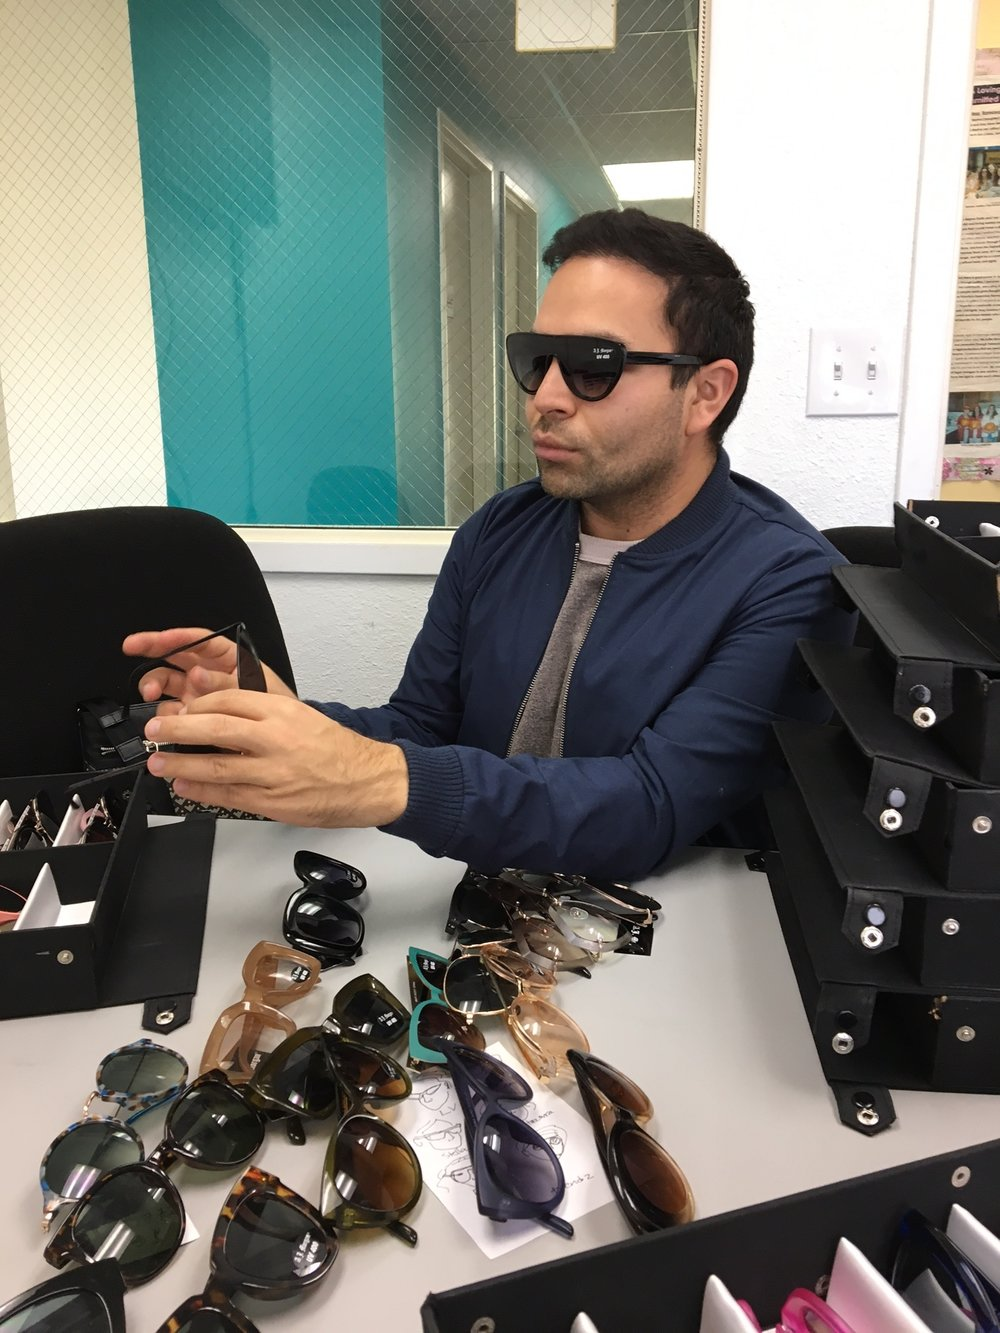 Alain  is our Sales Associate and Sunglasses Buyer.